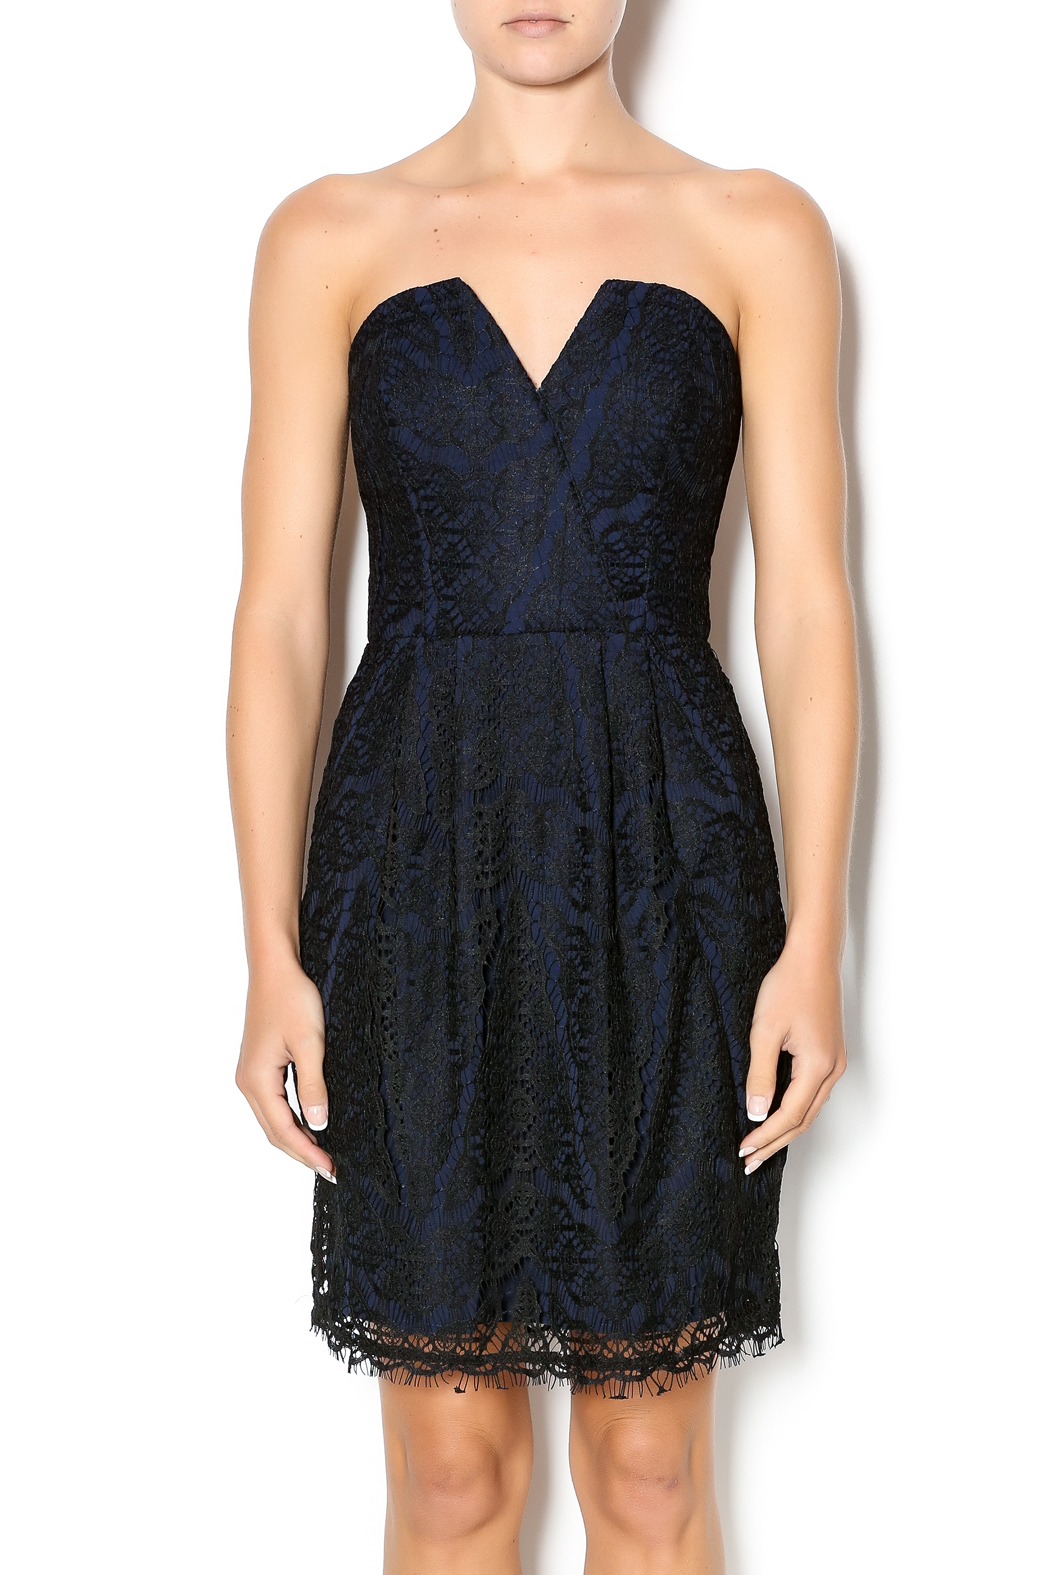 c551efdb Adelyn Rae Strapless Lace Dress from New York by Just B Boutique ...